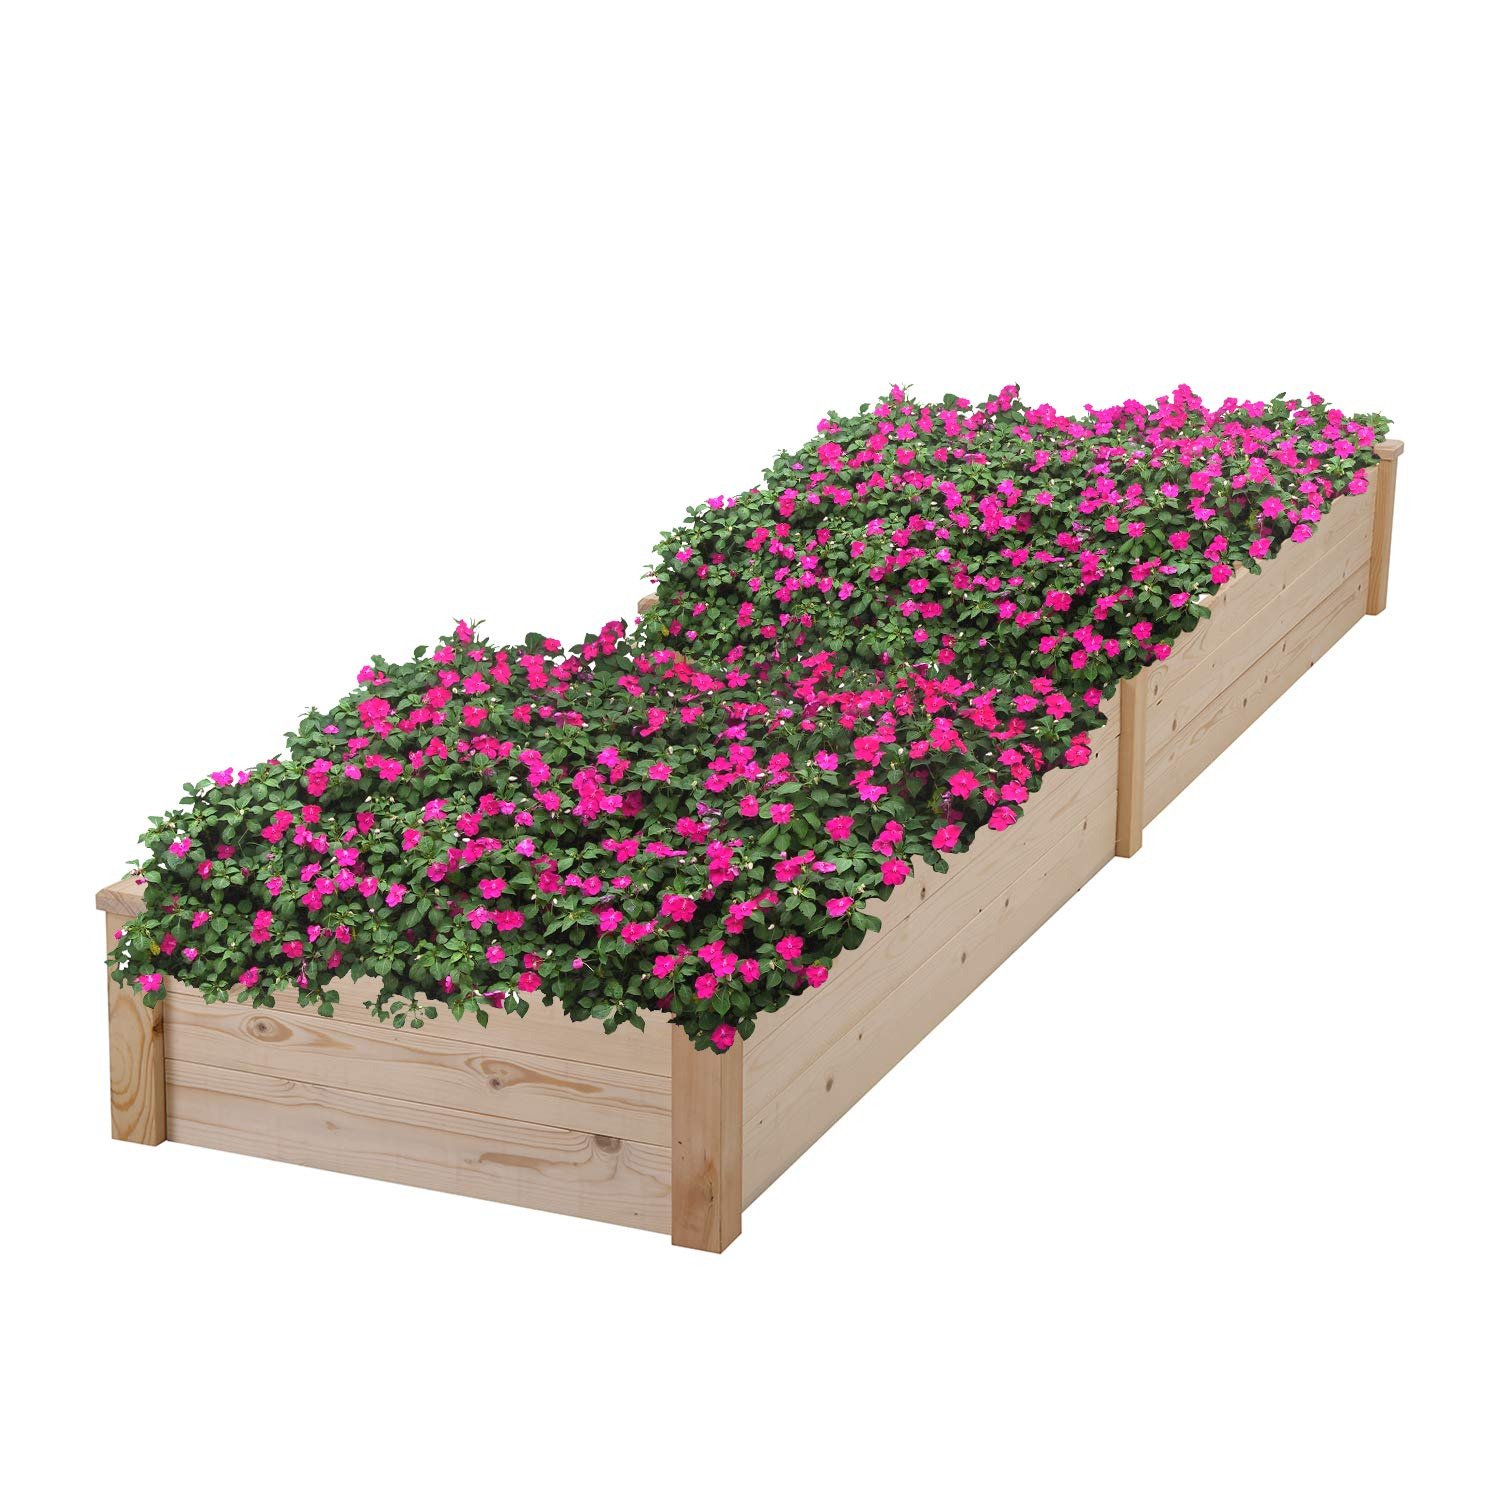 HYD-Parts Garden Bed Kit Planter Box for Vegetables Fruits Herb Grow, Planter Raised Beds (023)